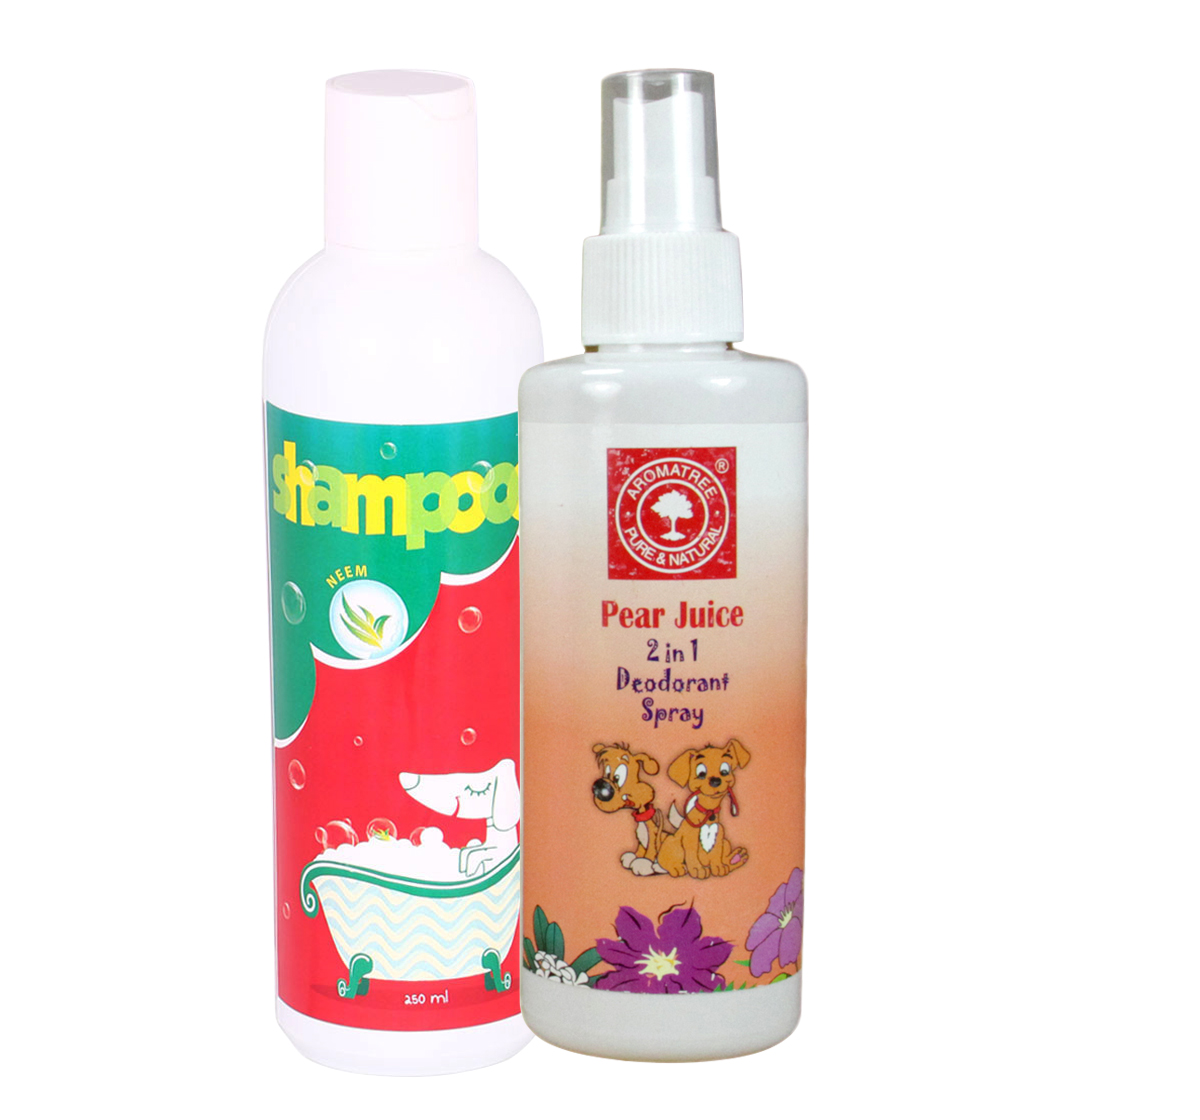 Shampooch Neem Shampoo for Dog - 250 ml With Deodorant